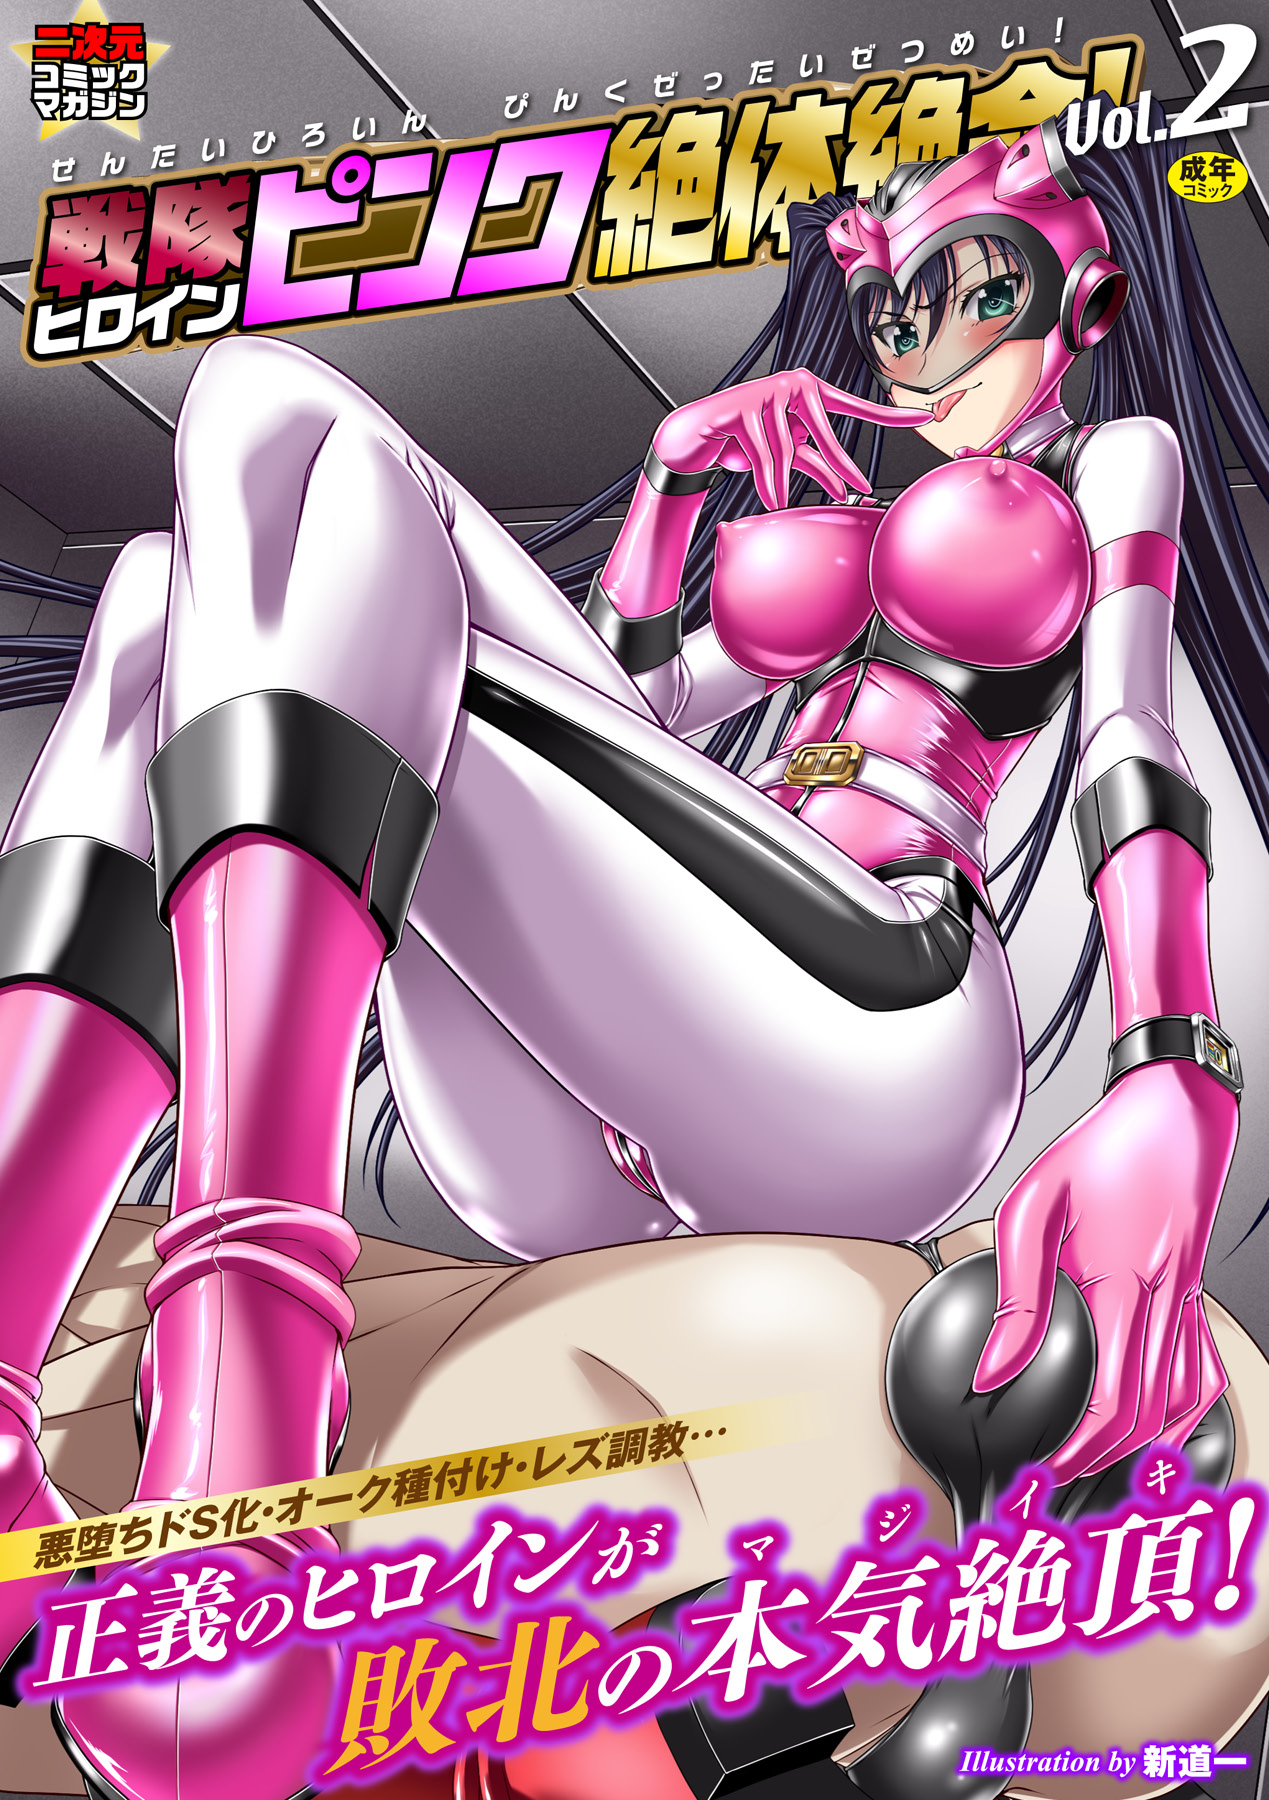 Sex ranger girls hentai sexual movies